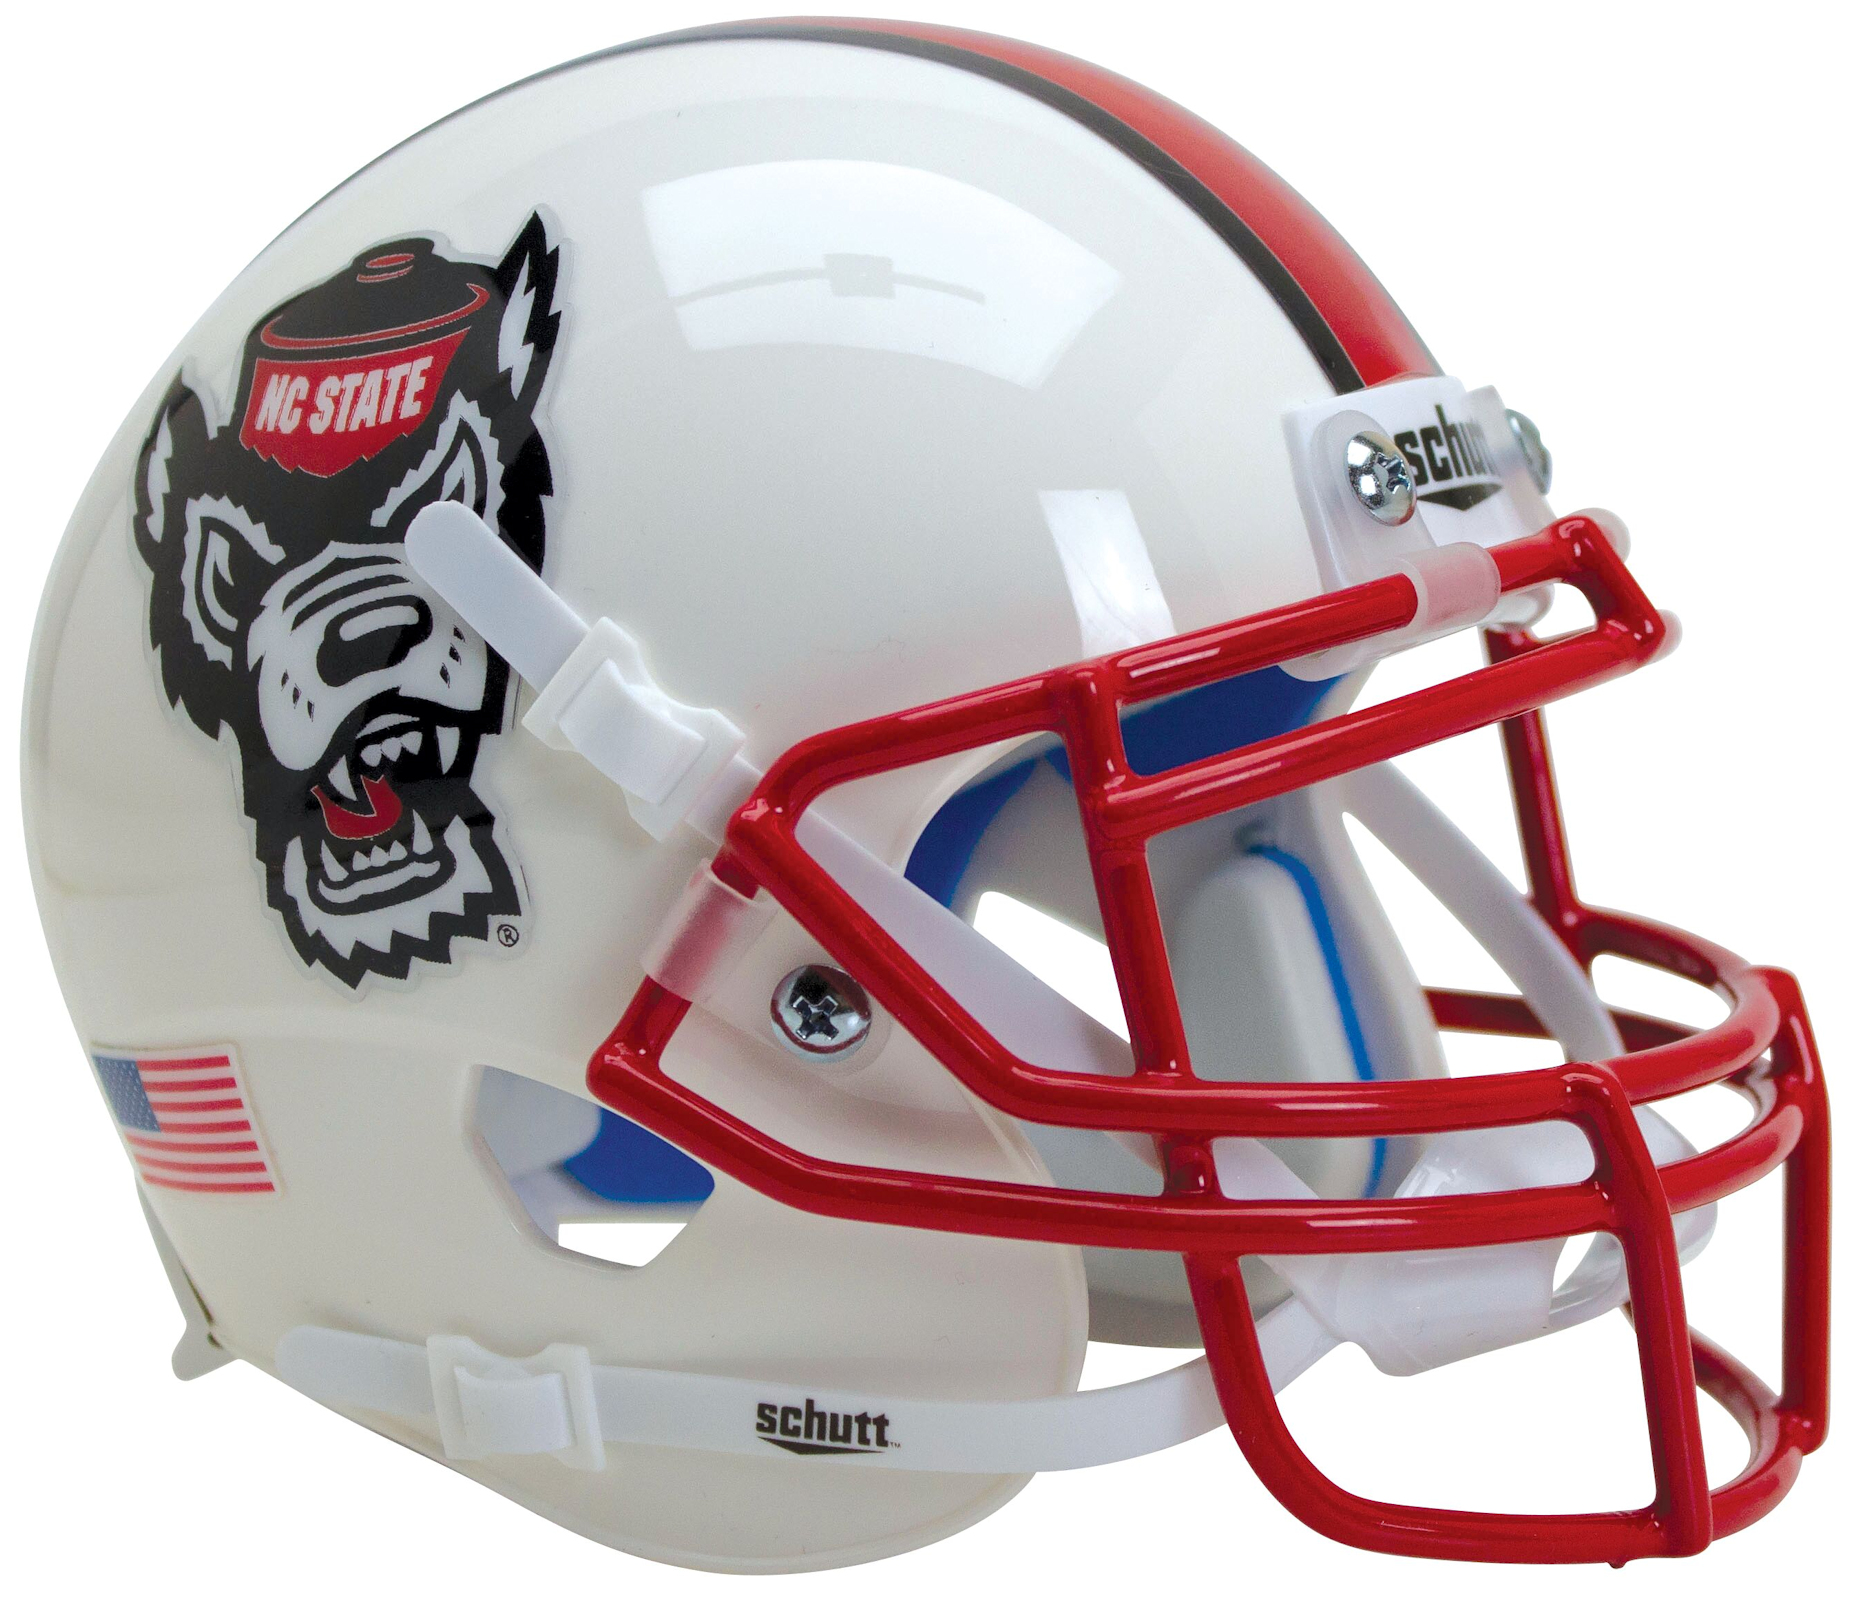 North Carolina State Wolfpack Authentic College XP Football Helmet Schutt <B>White Wolf</B>